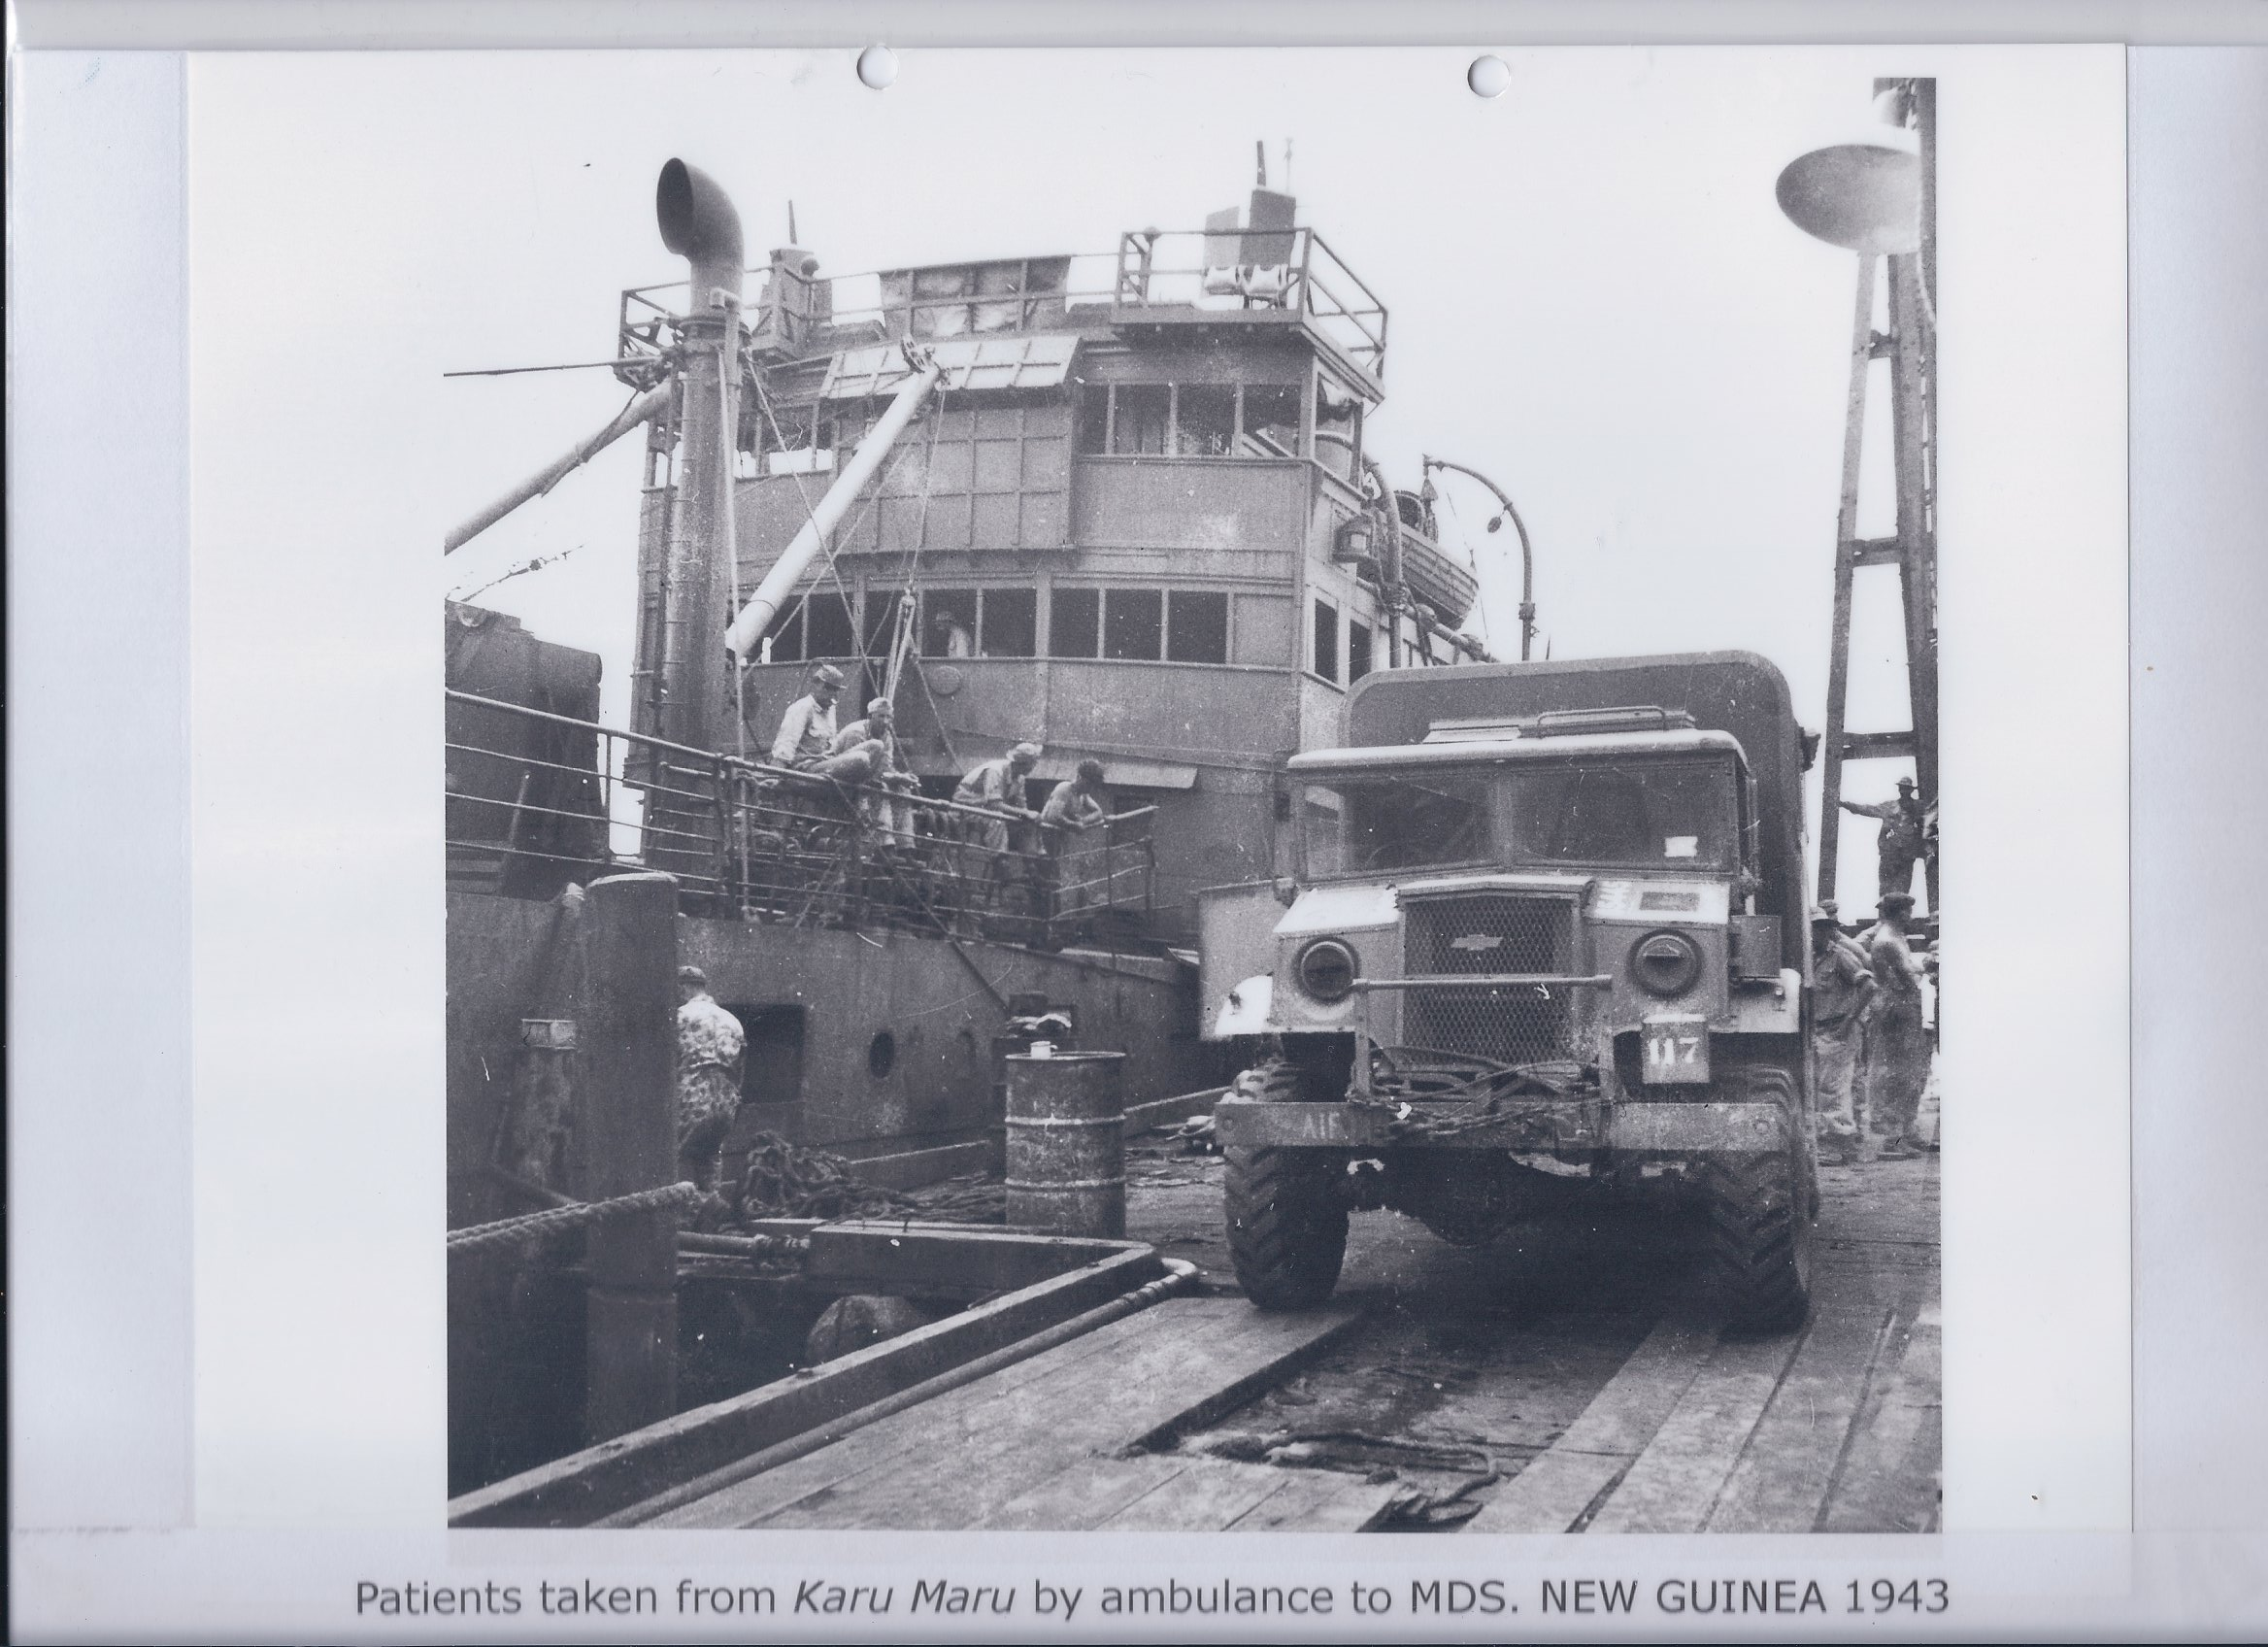 Patients taken from Karu Maru by ambulance to MDS. NEW GUINEA 1943